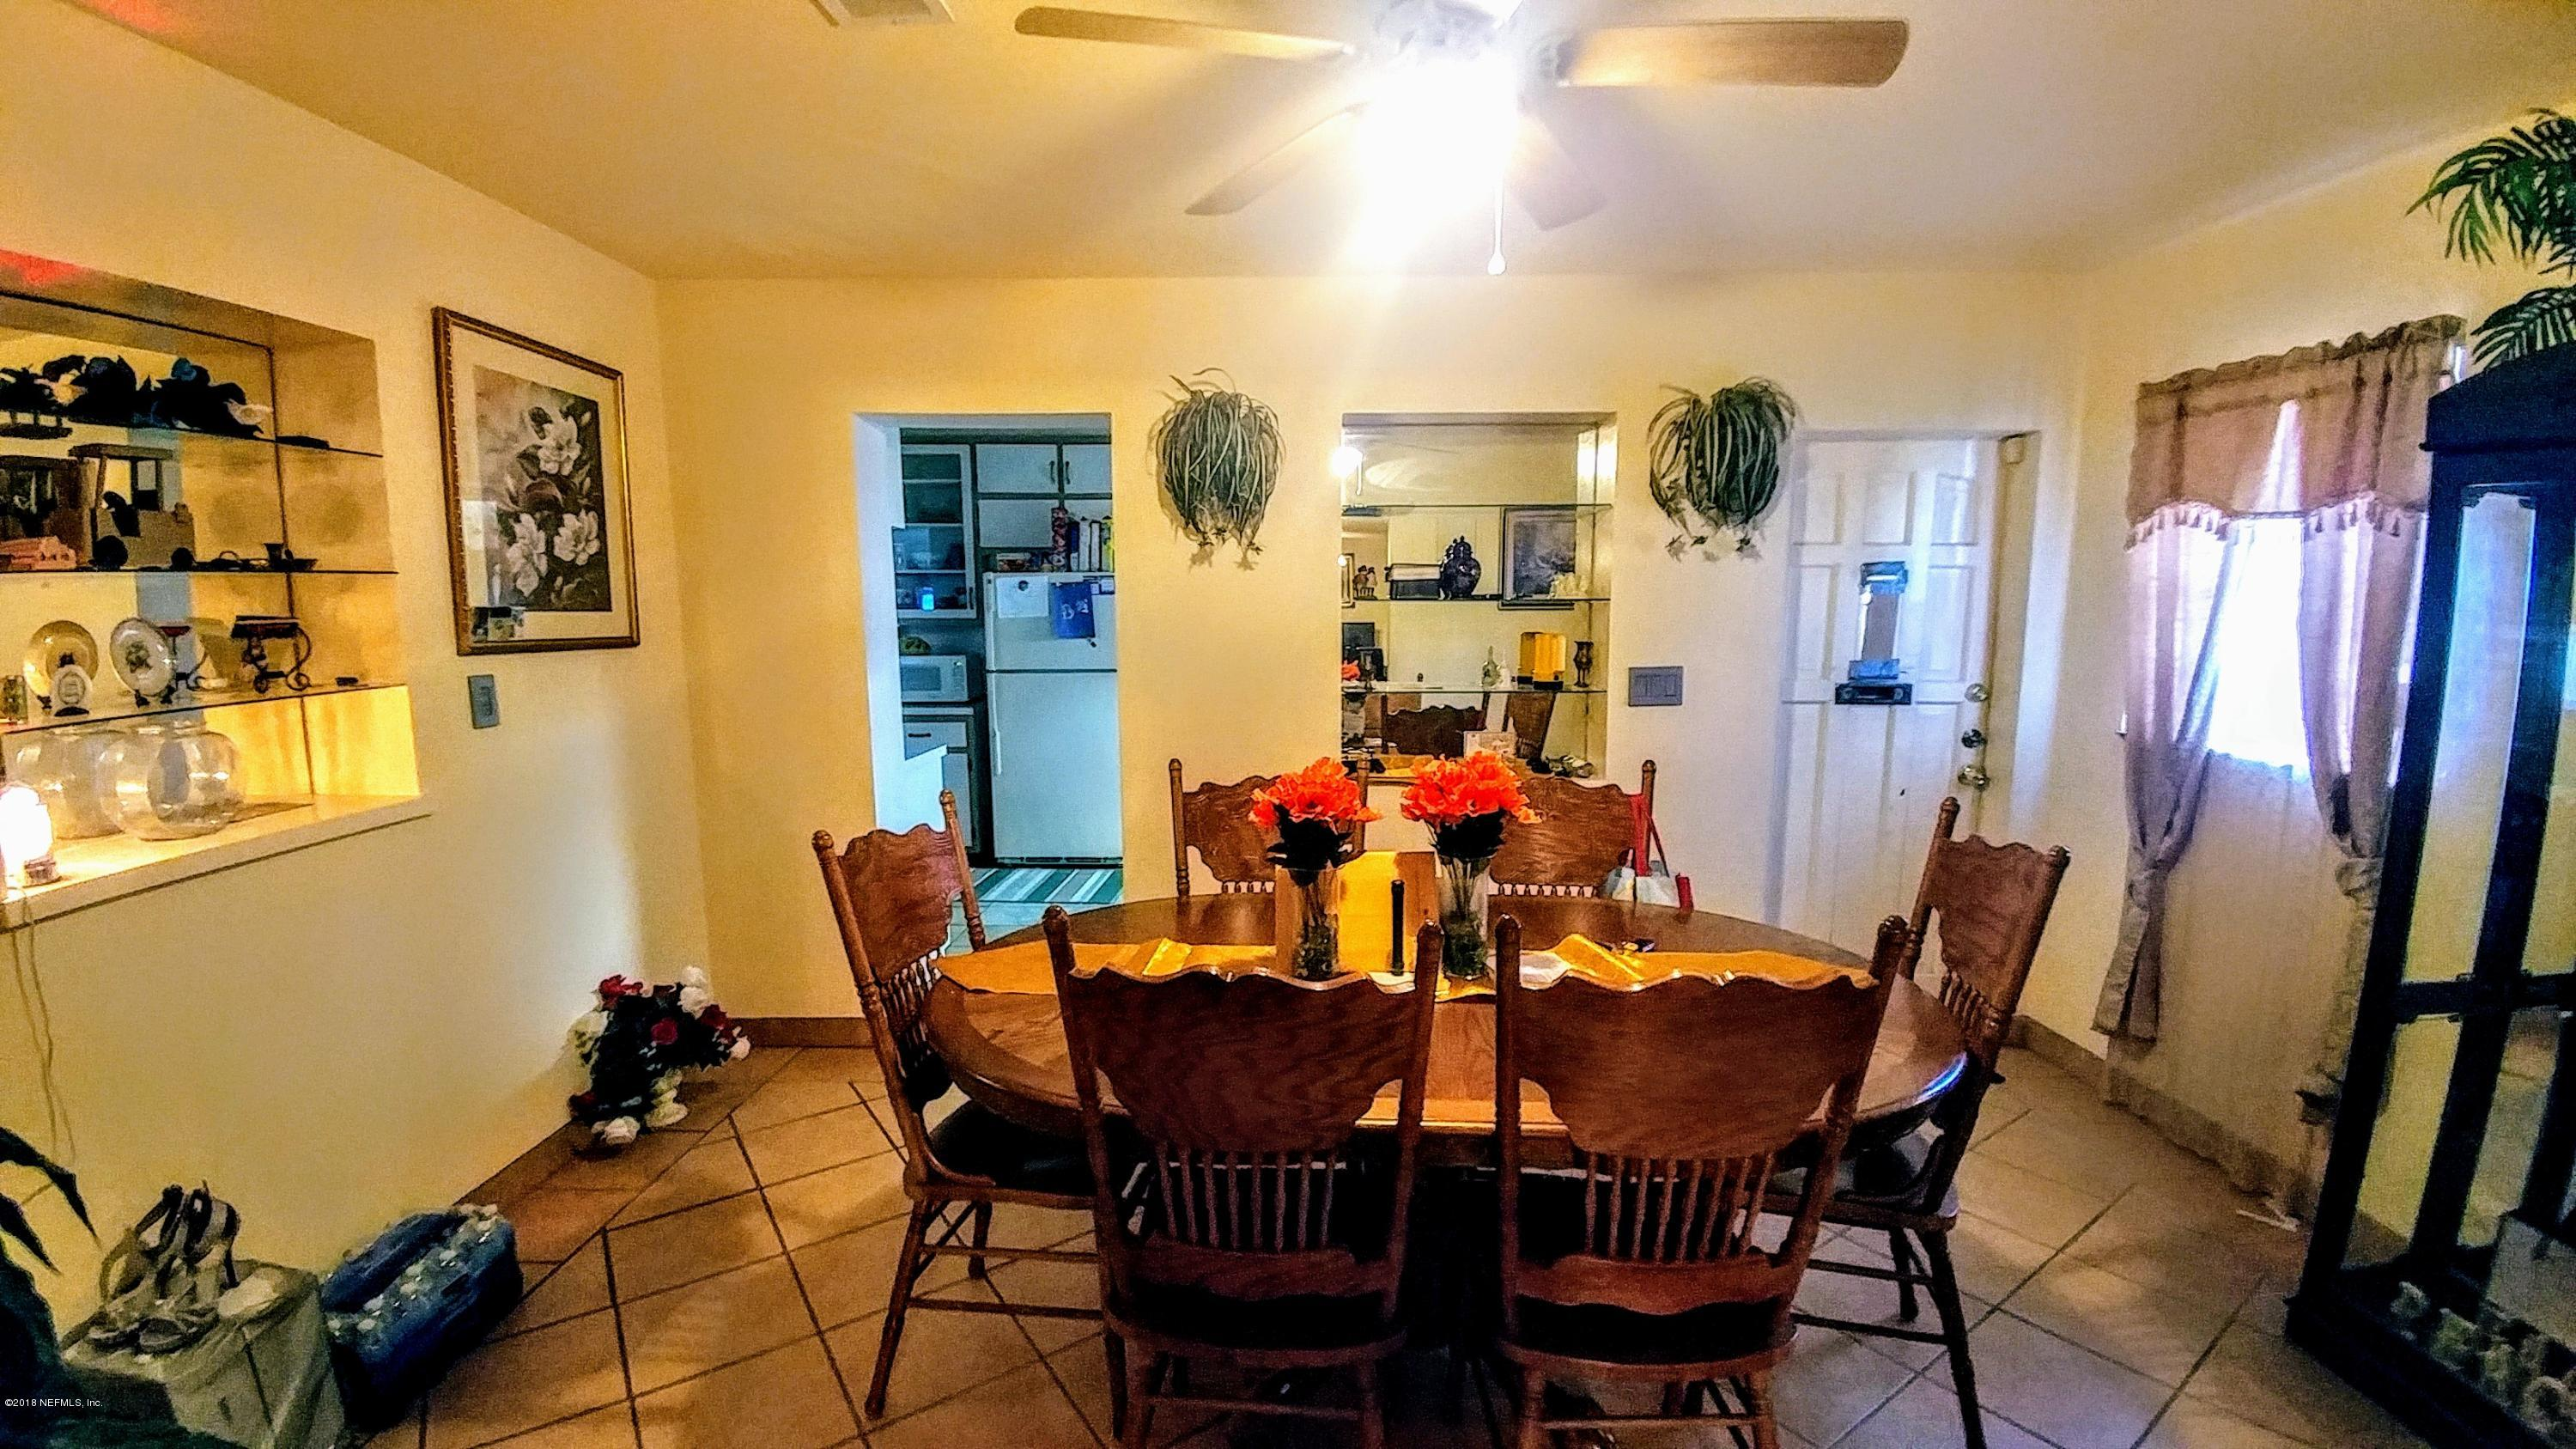 2204 DIANA, PALATKA, FLORIDA 32177, 3 Bedrooms Bedrooms, ,2 BathroomsBathrooms,Residential - single family,For sale,DIANA,933047